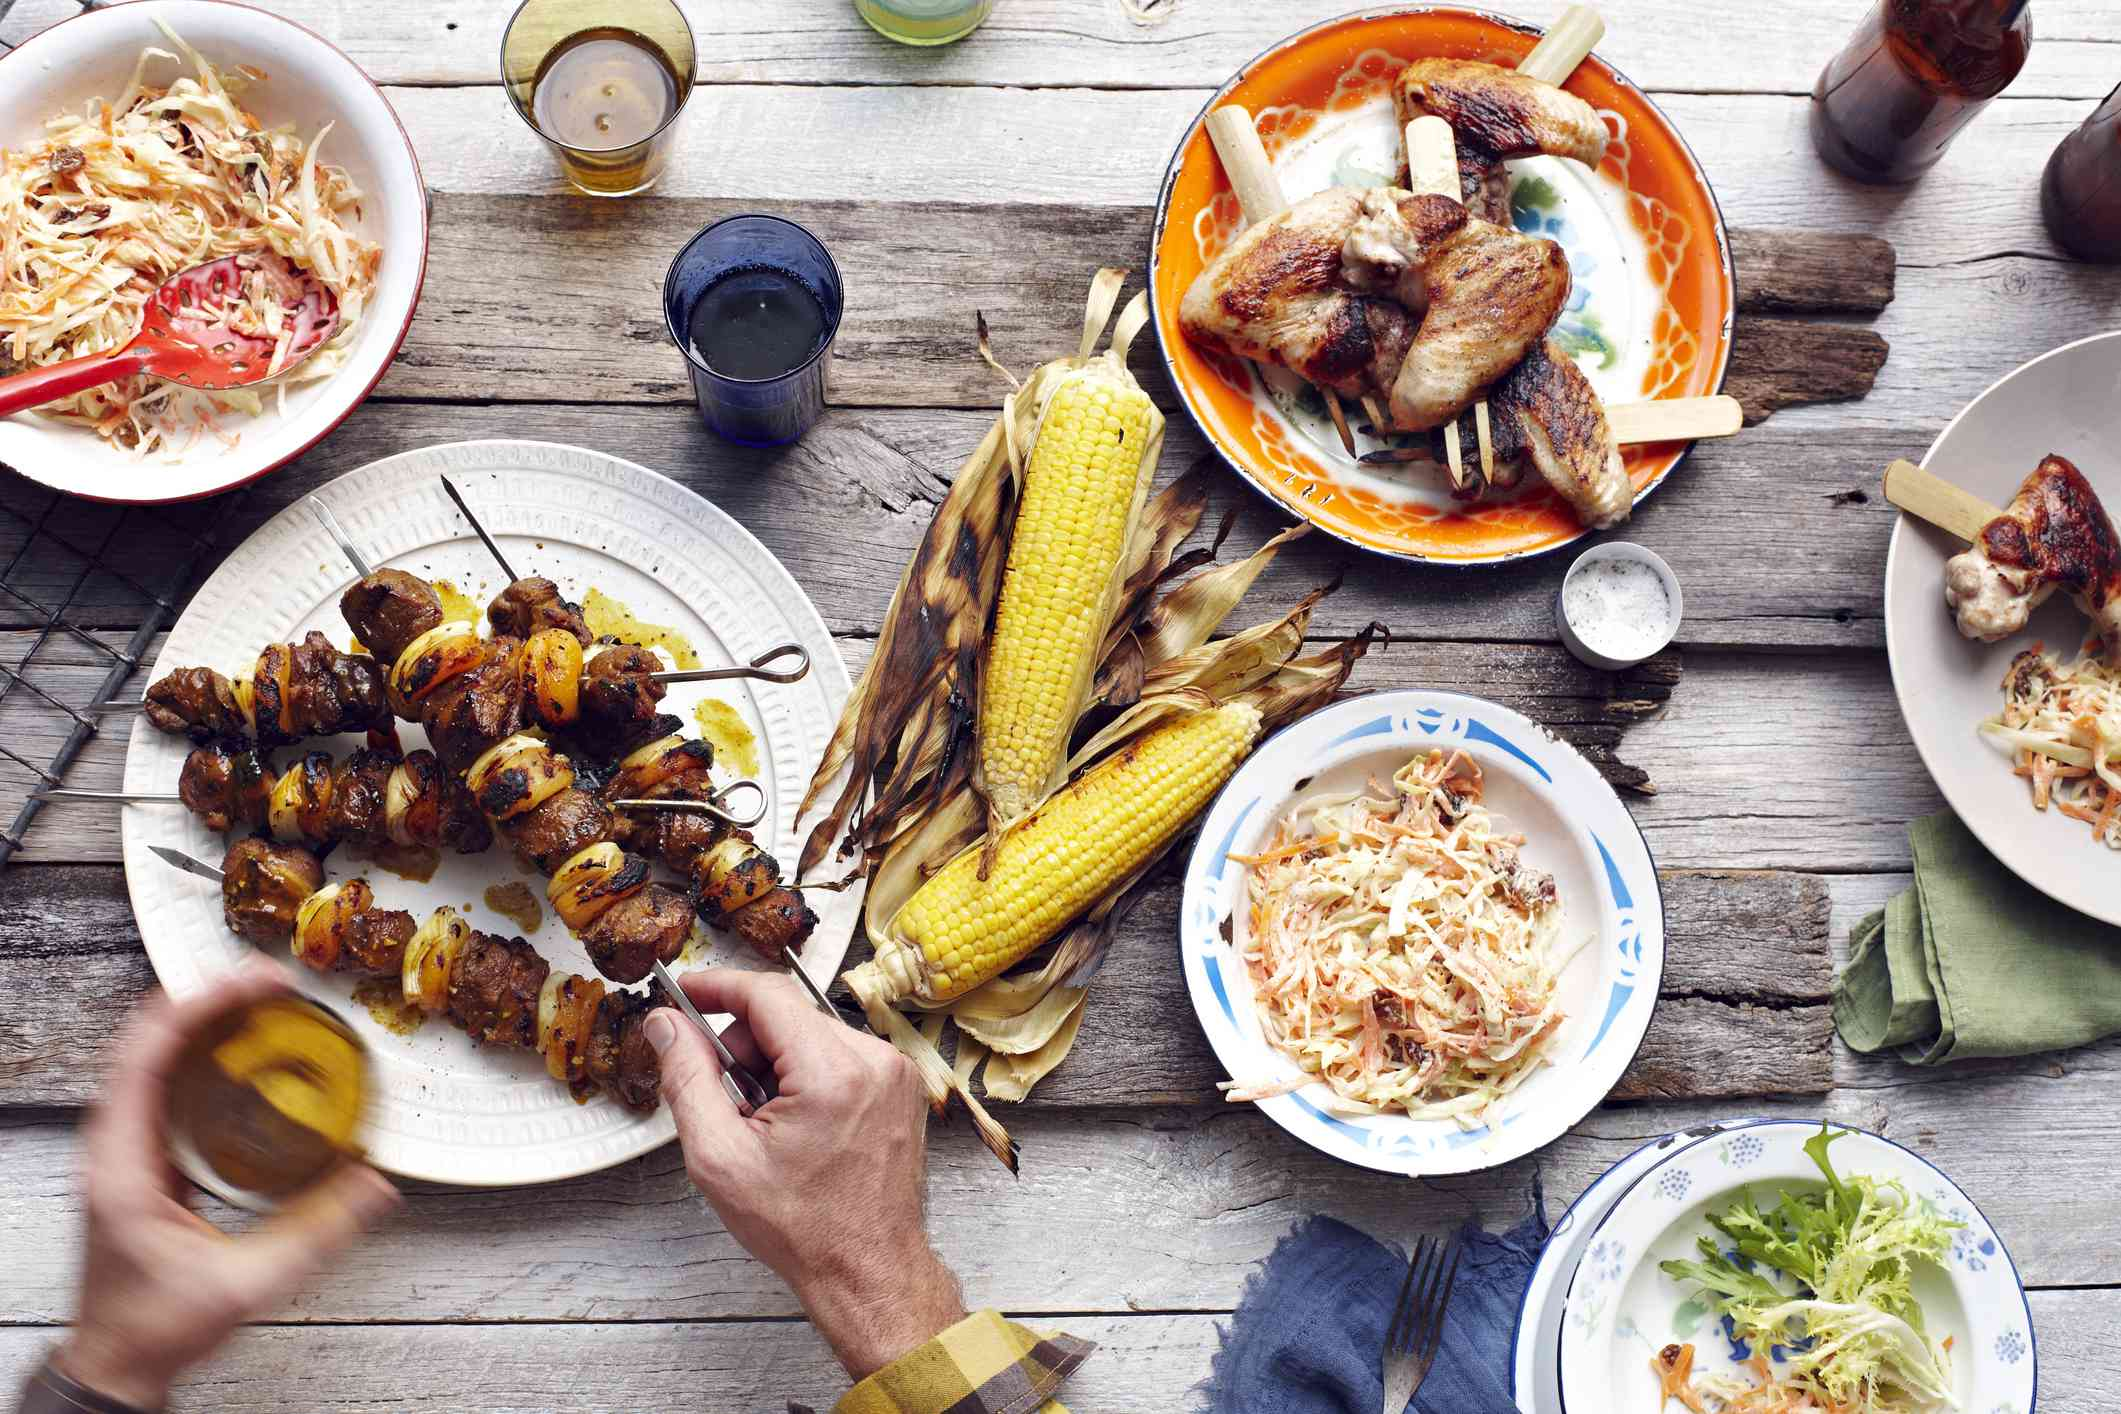 Variety of grilled food